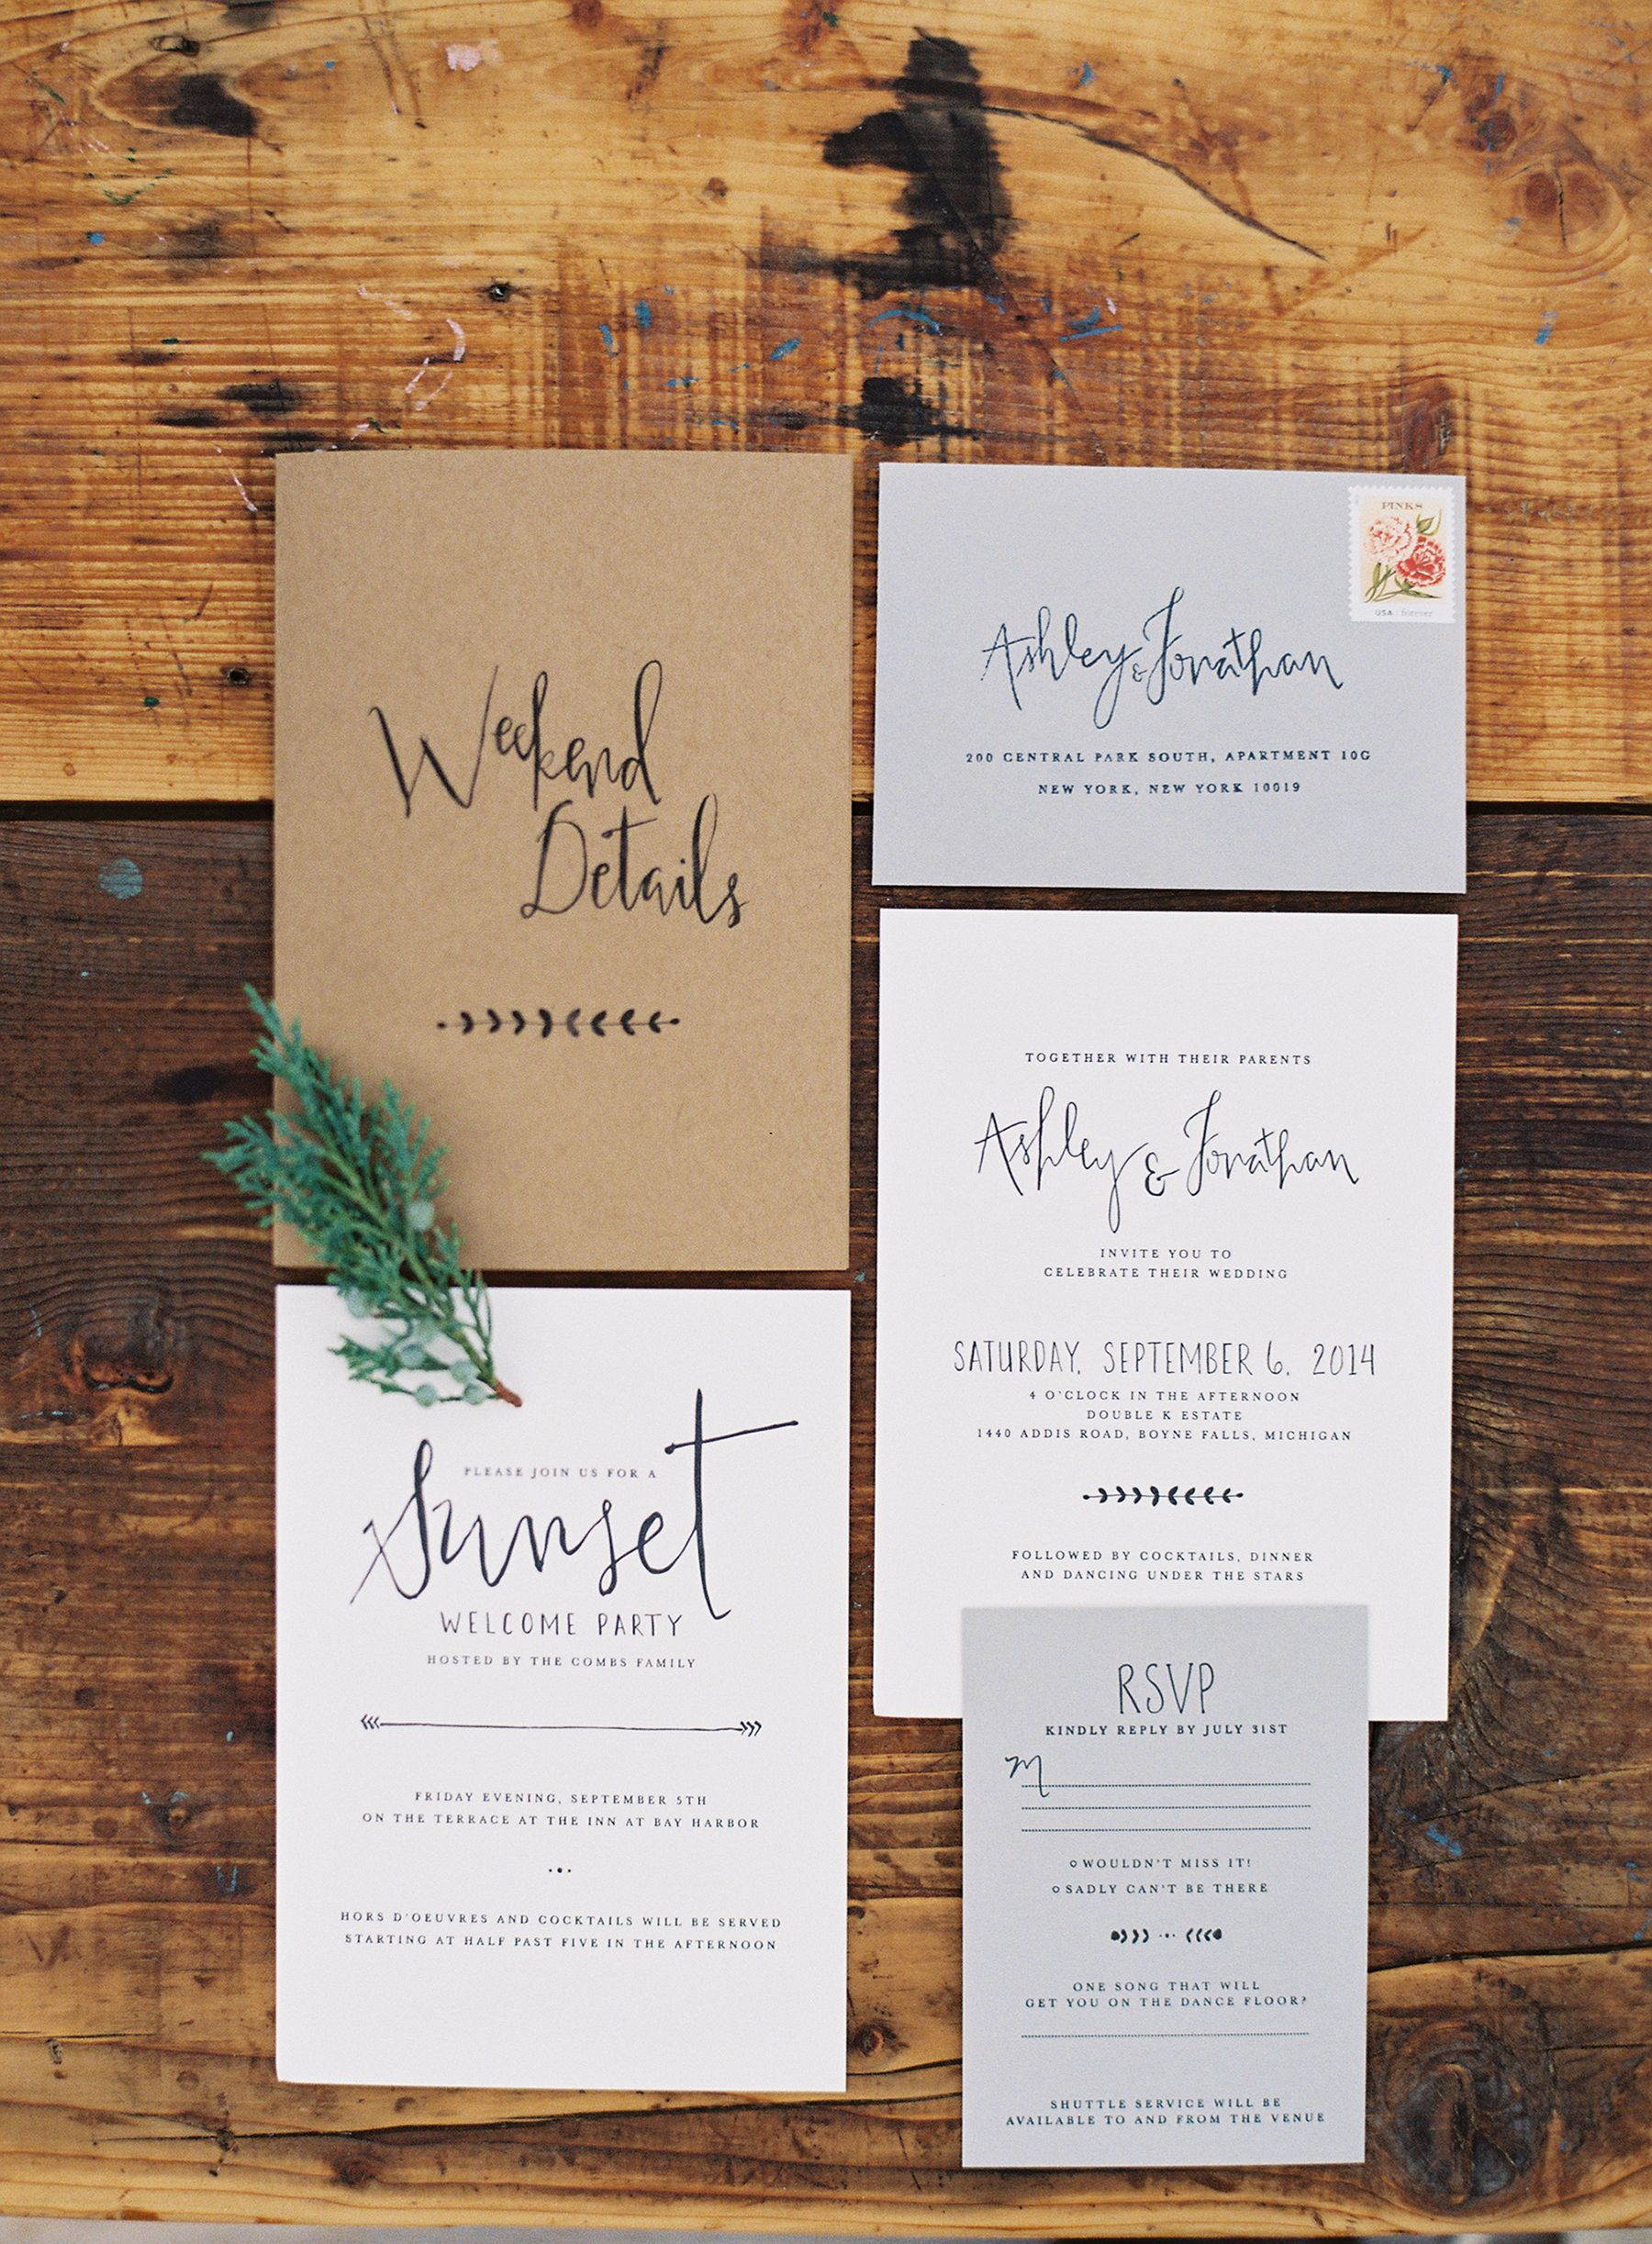 Rustic Chic Estate Wedding in Northern Michigan | Ceremony signs ...